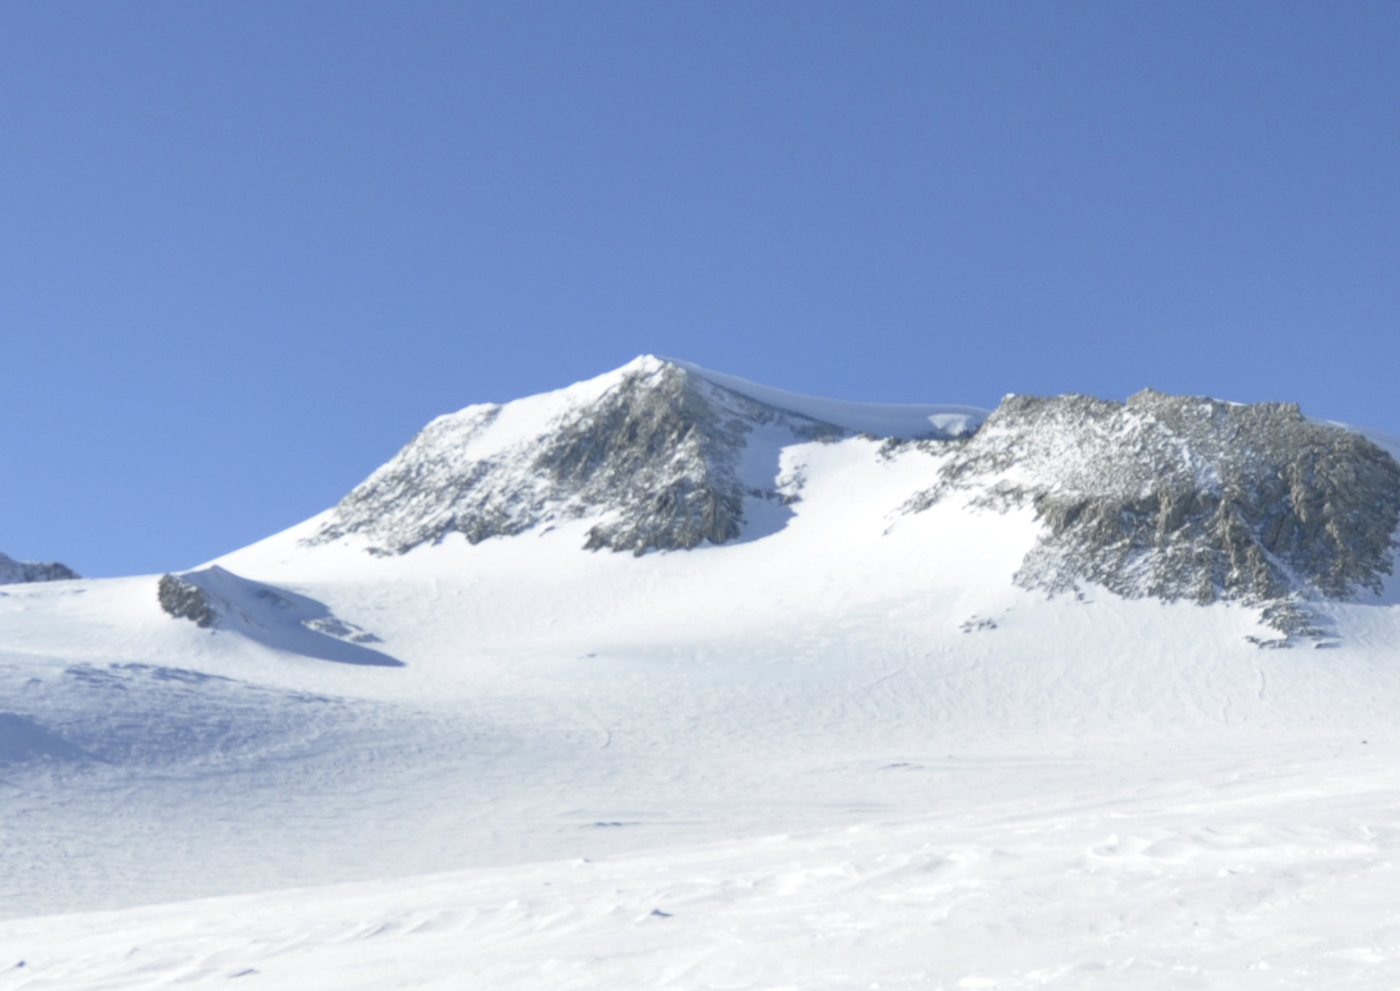 Mount Vinson from NW at Vinson Plateau by Christian Stangl (flickr)